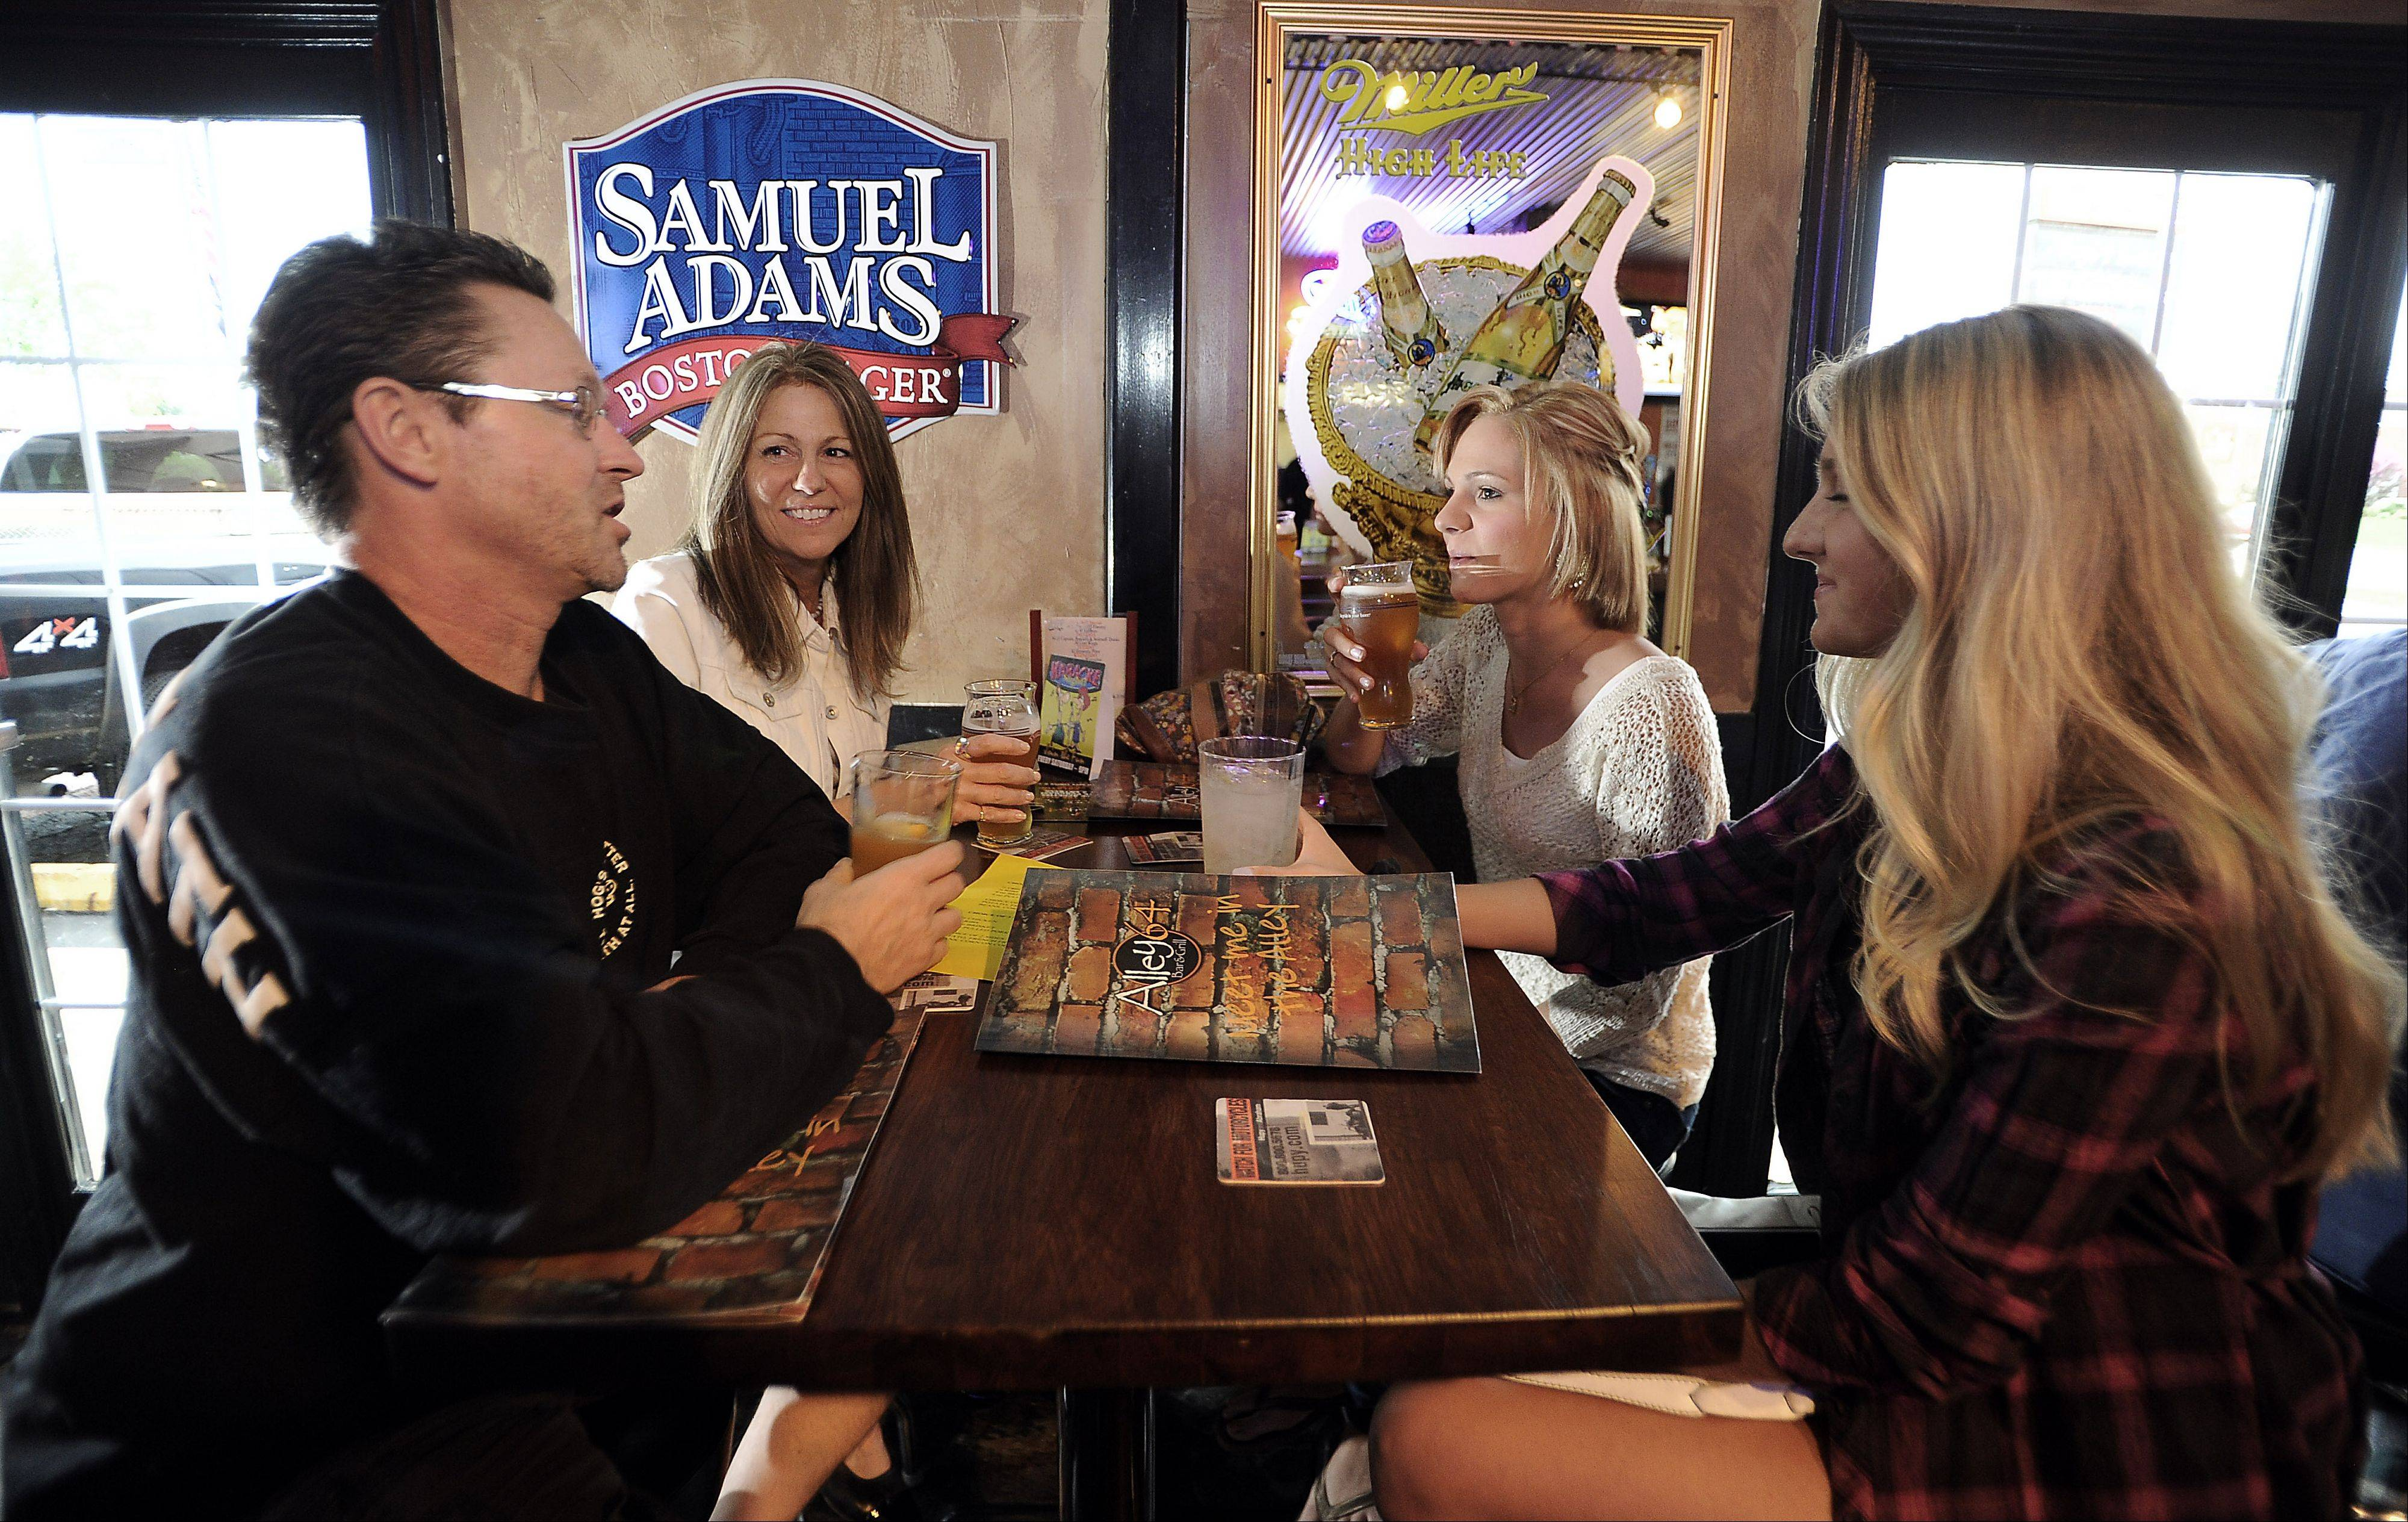 Steve and Jennifer Dee of Long Grove entertain their daughters Taylor and Mackenzie at Alley 64 in Palatine.